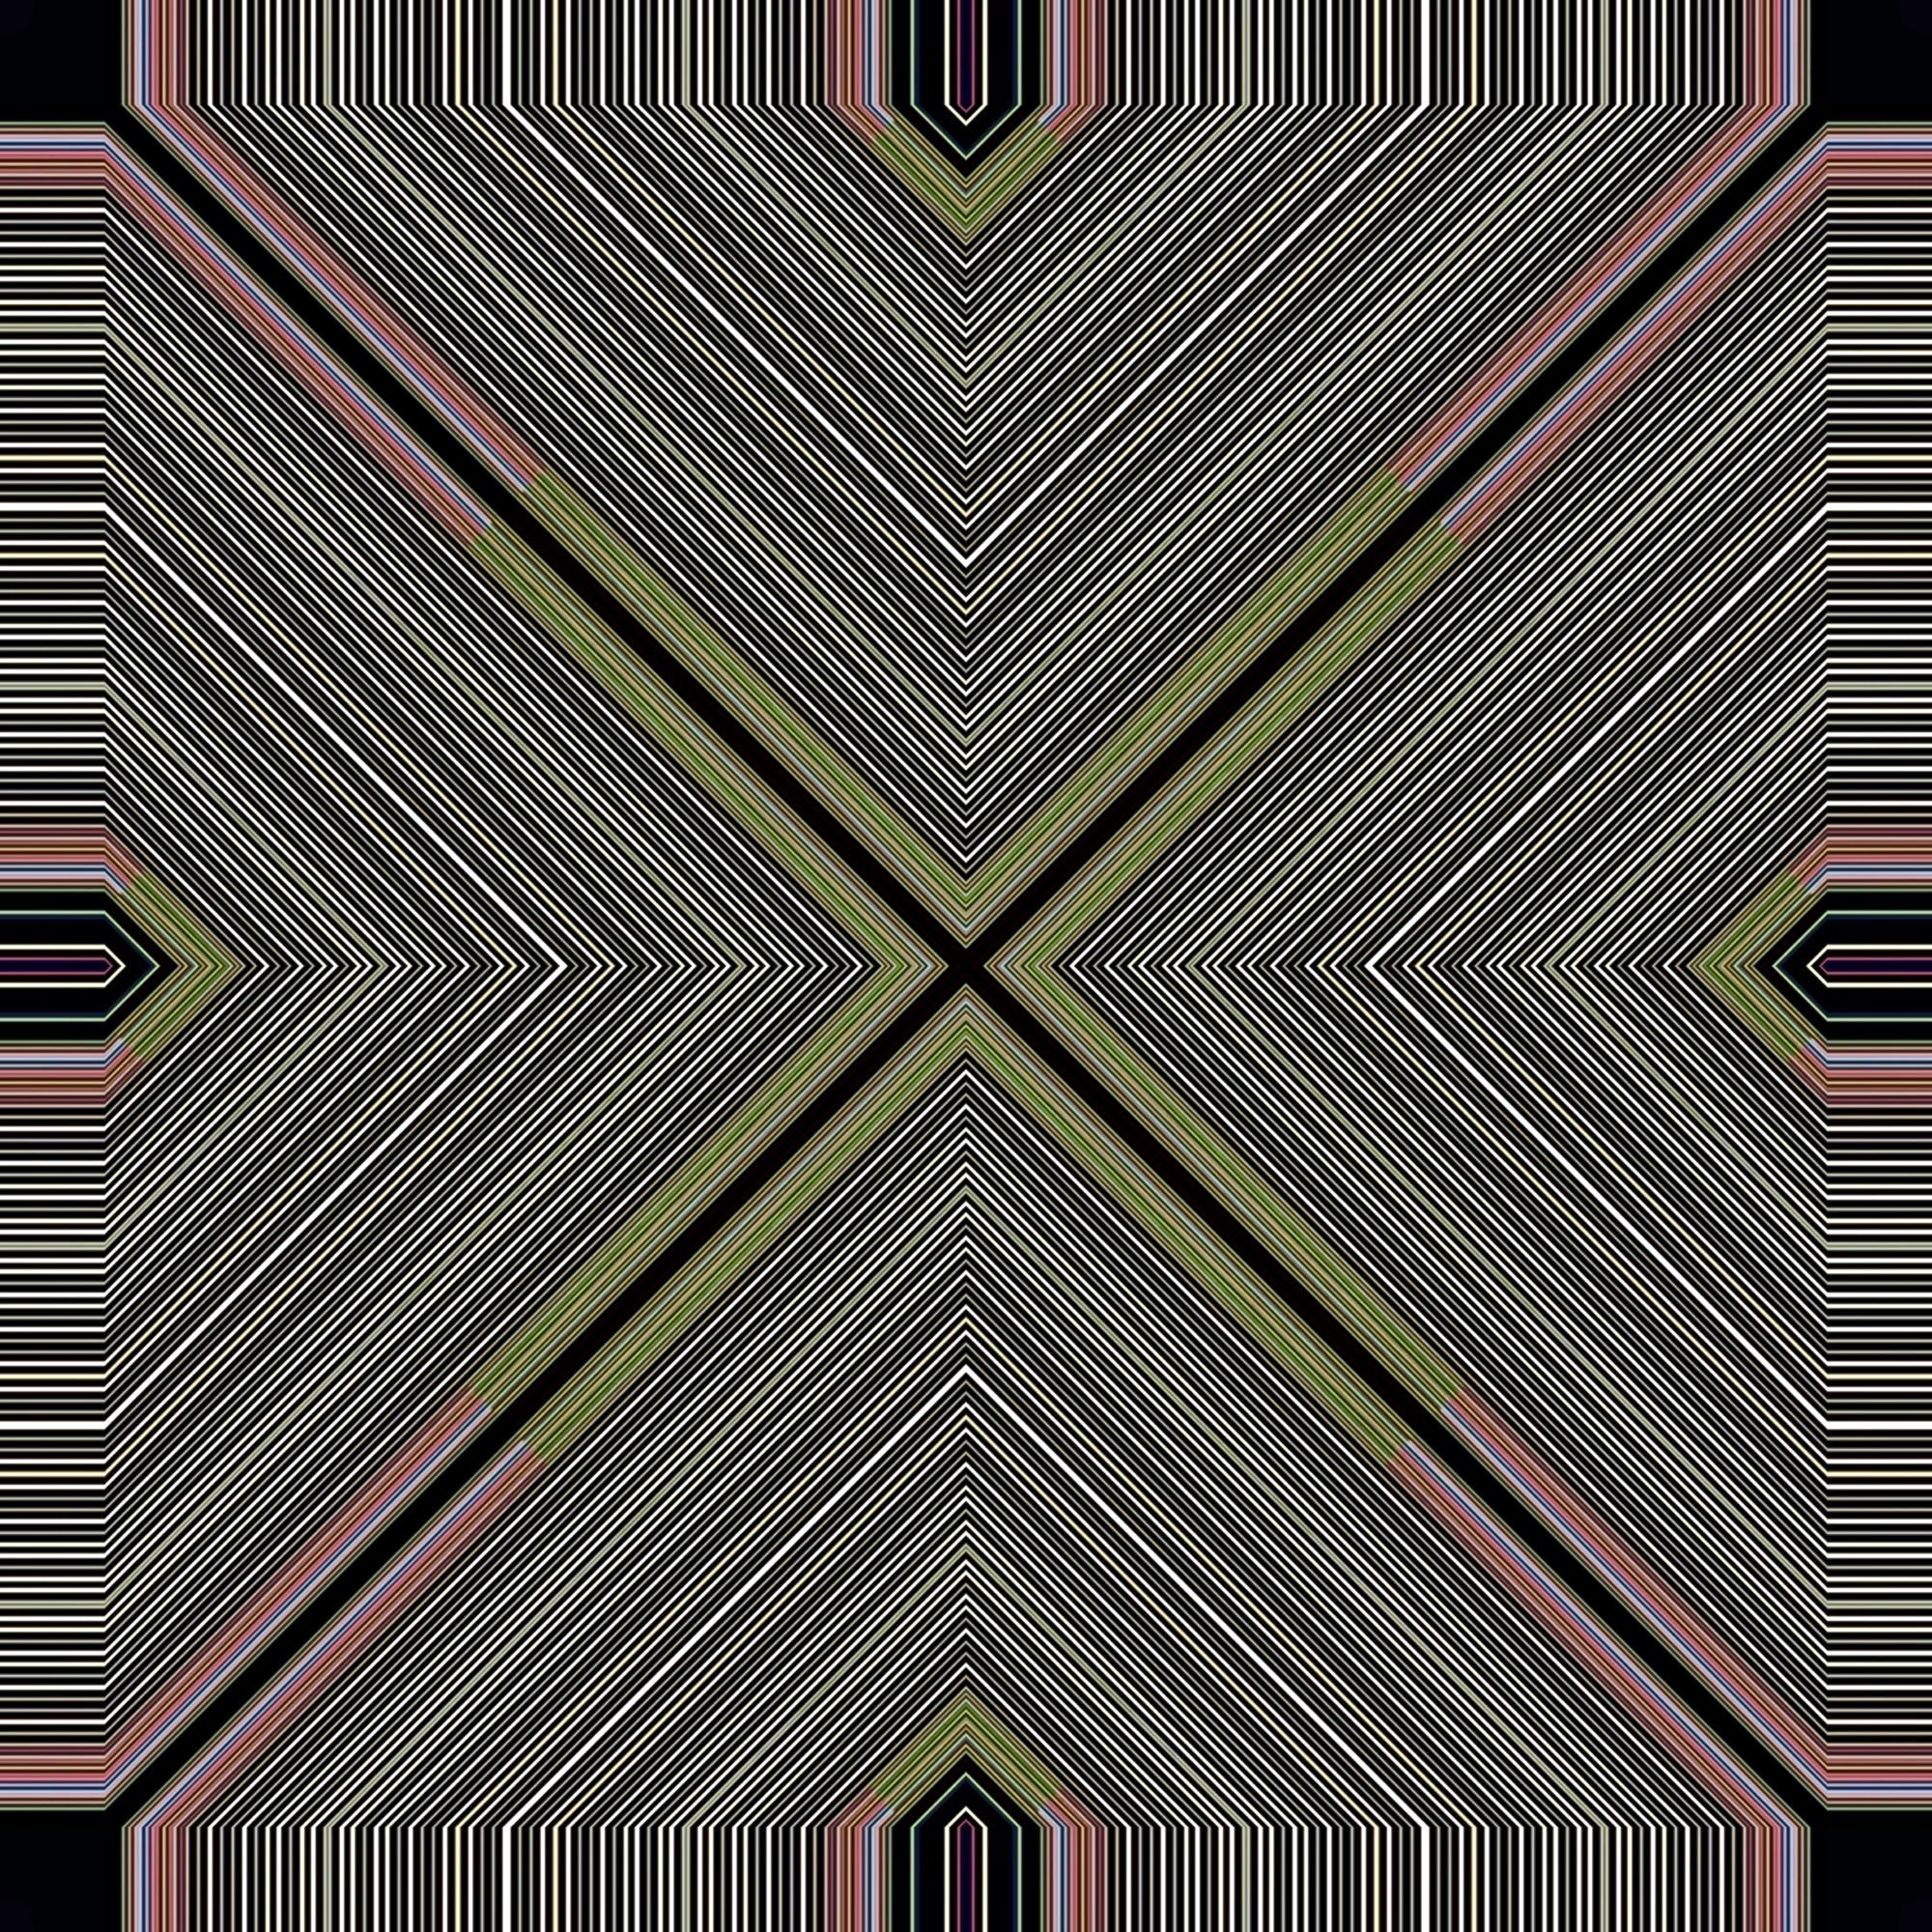 The Space Between Lines 15